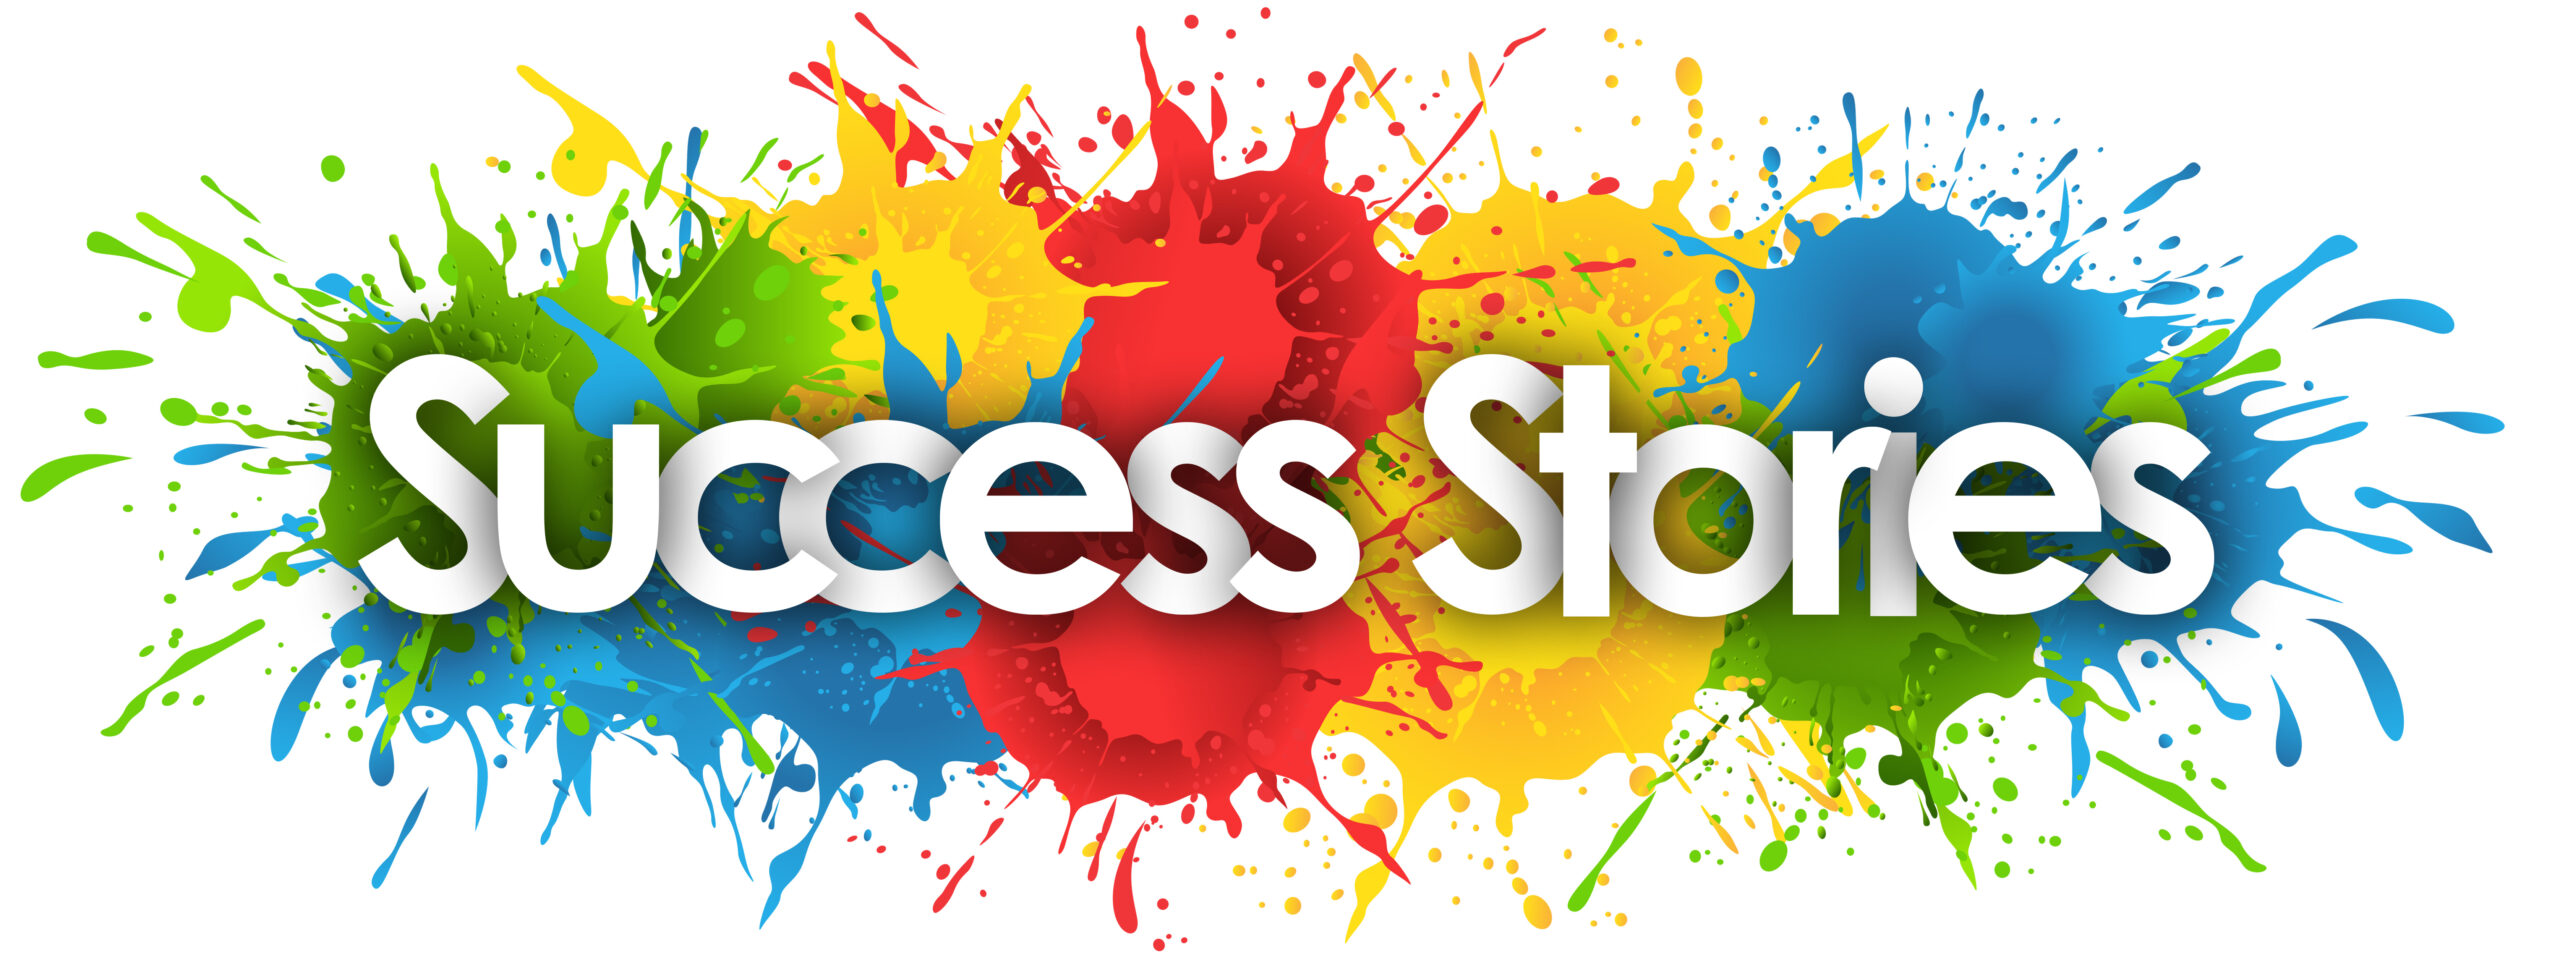 Success Stories Paint splat Image